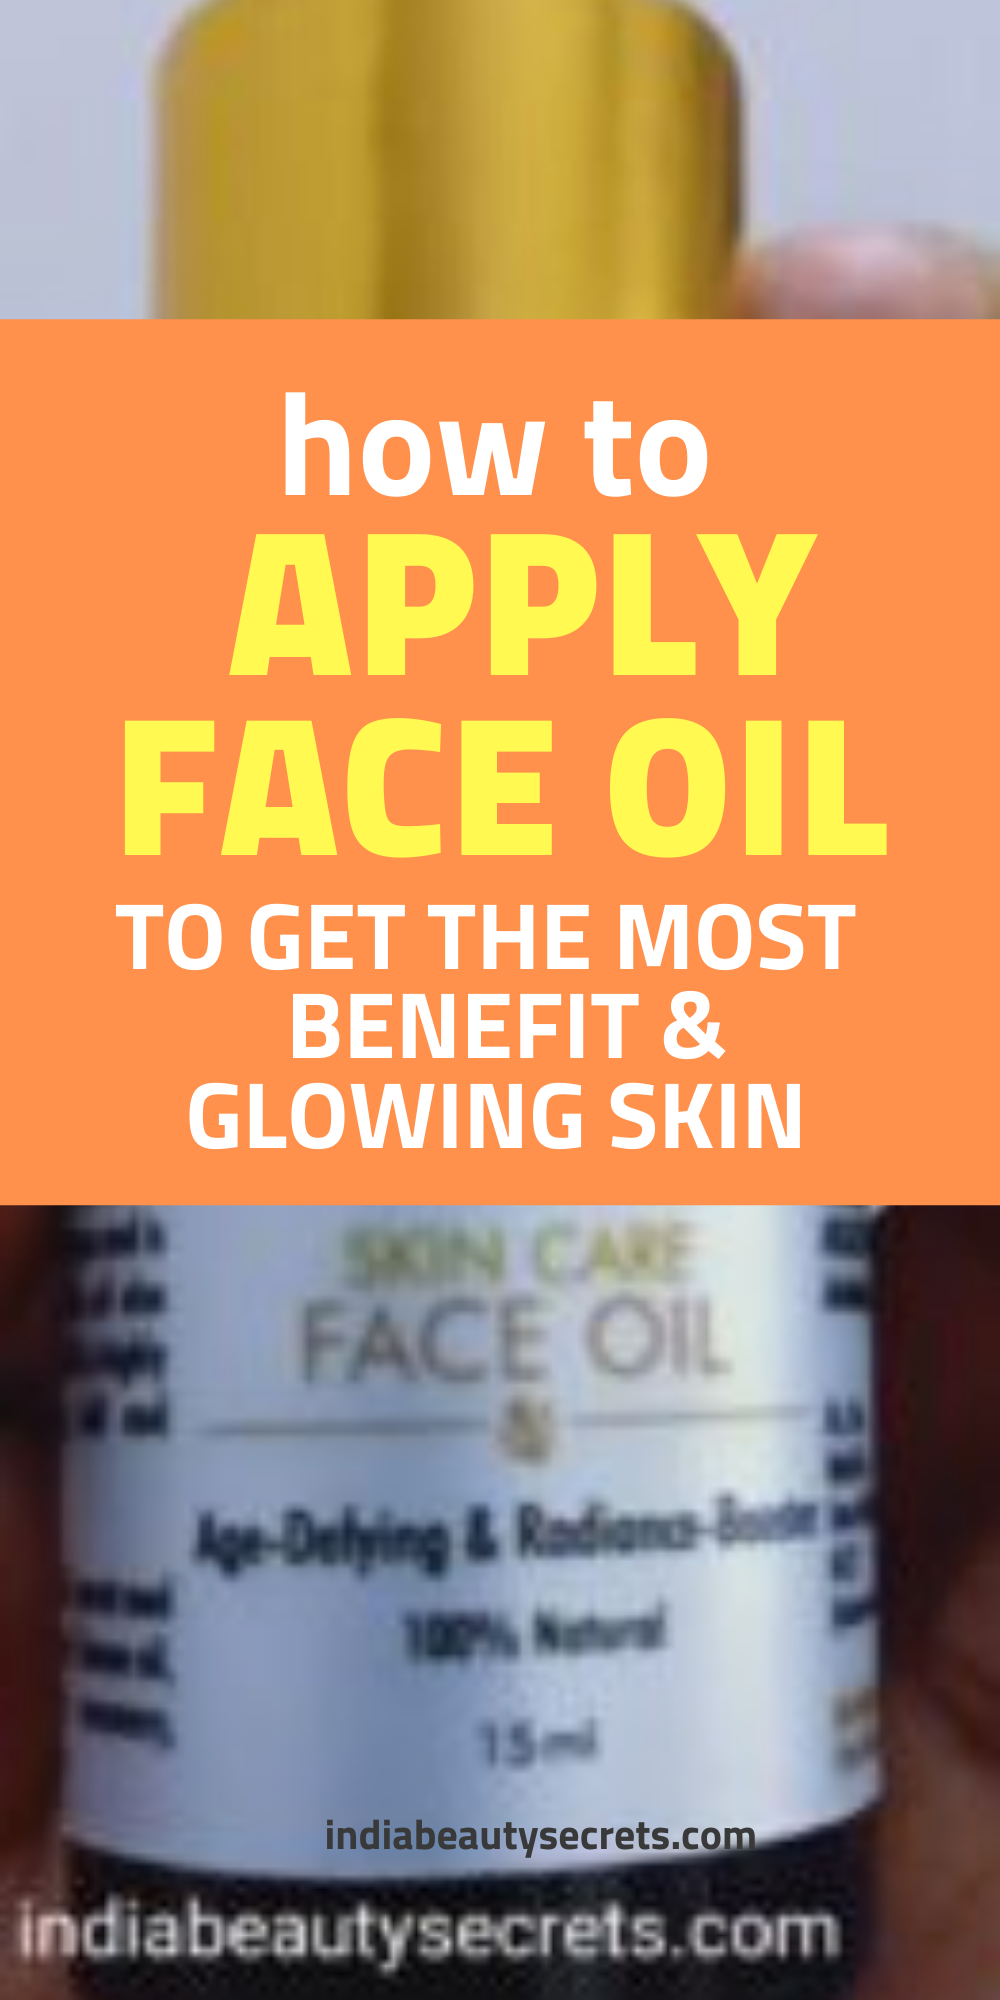 Bio Bloom Face Oil Age Defying Face Oil Review How To Use Biobloom Face Oil For Acne For Dry Skin Oily Ski Oil For Dry Skin Face Products Skincare Face Oil